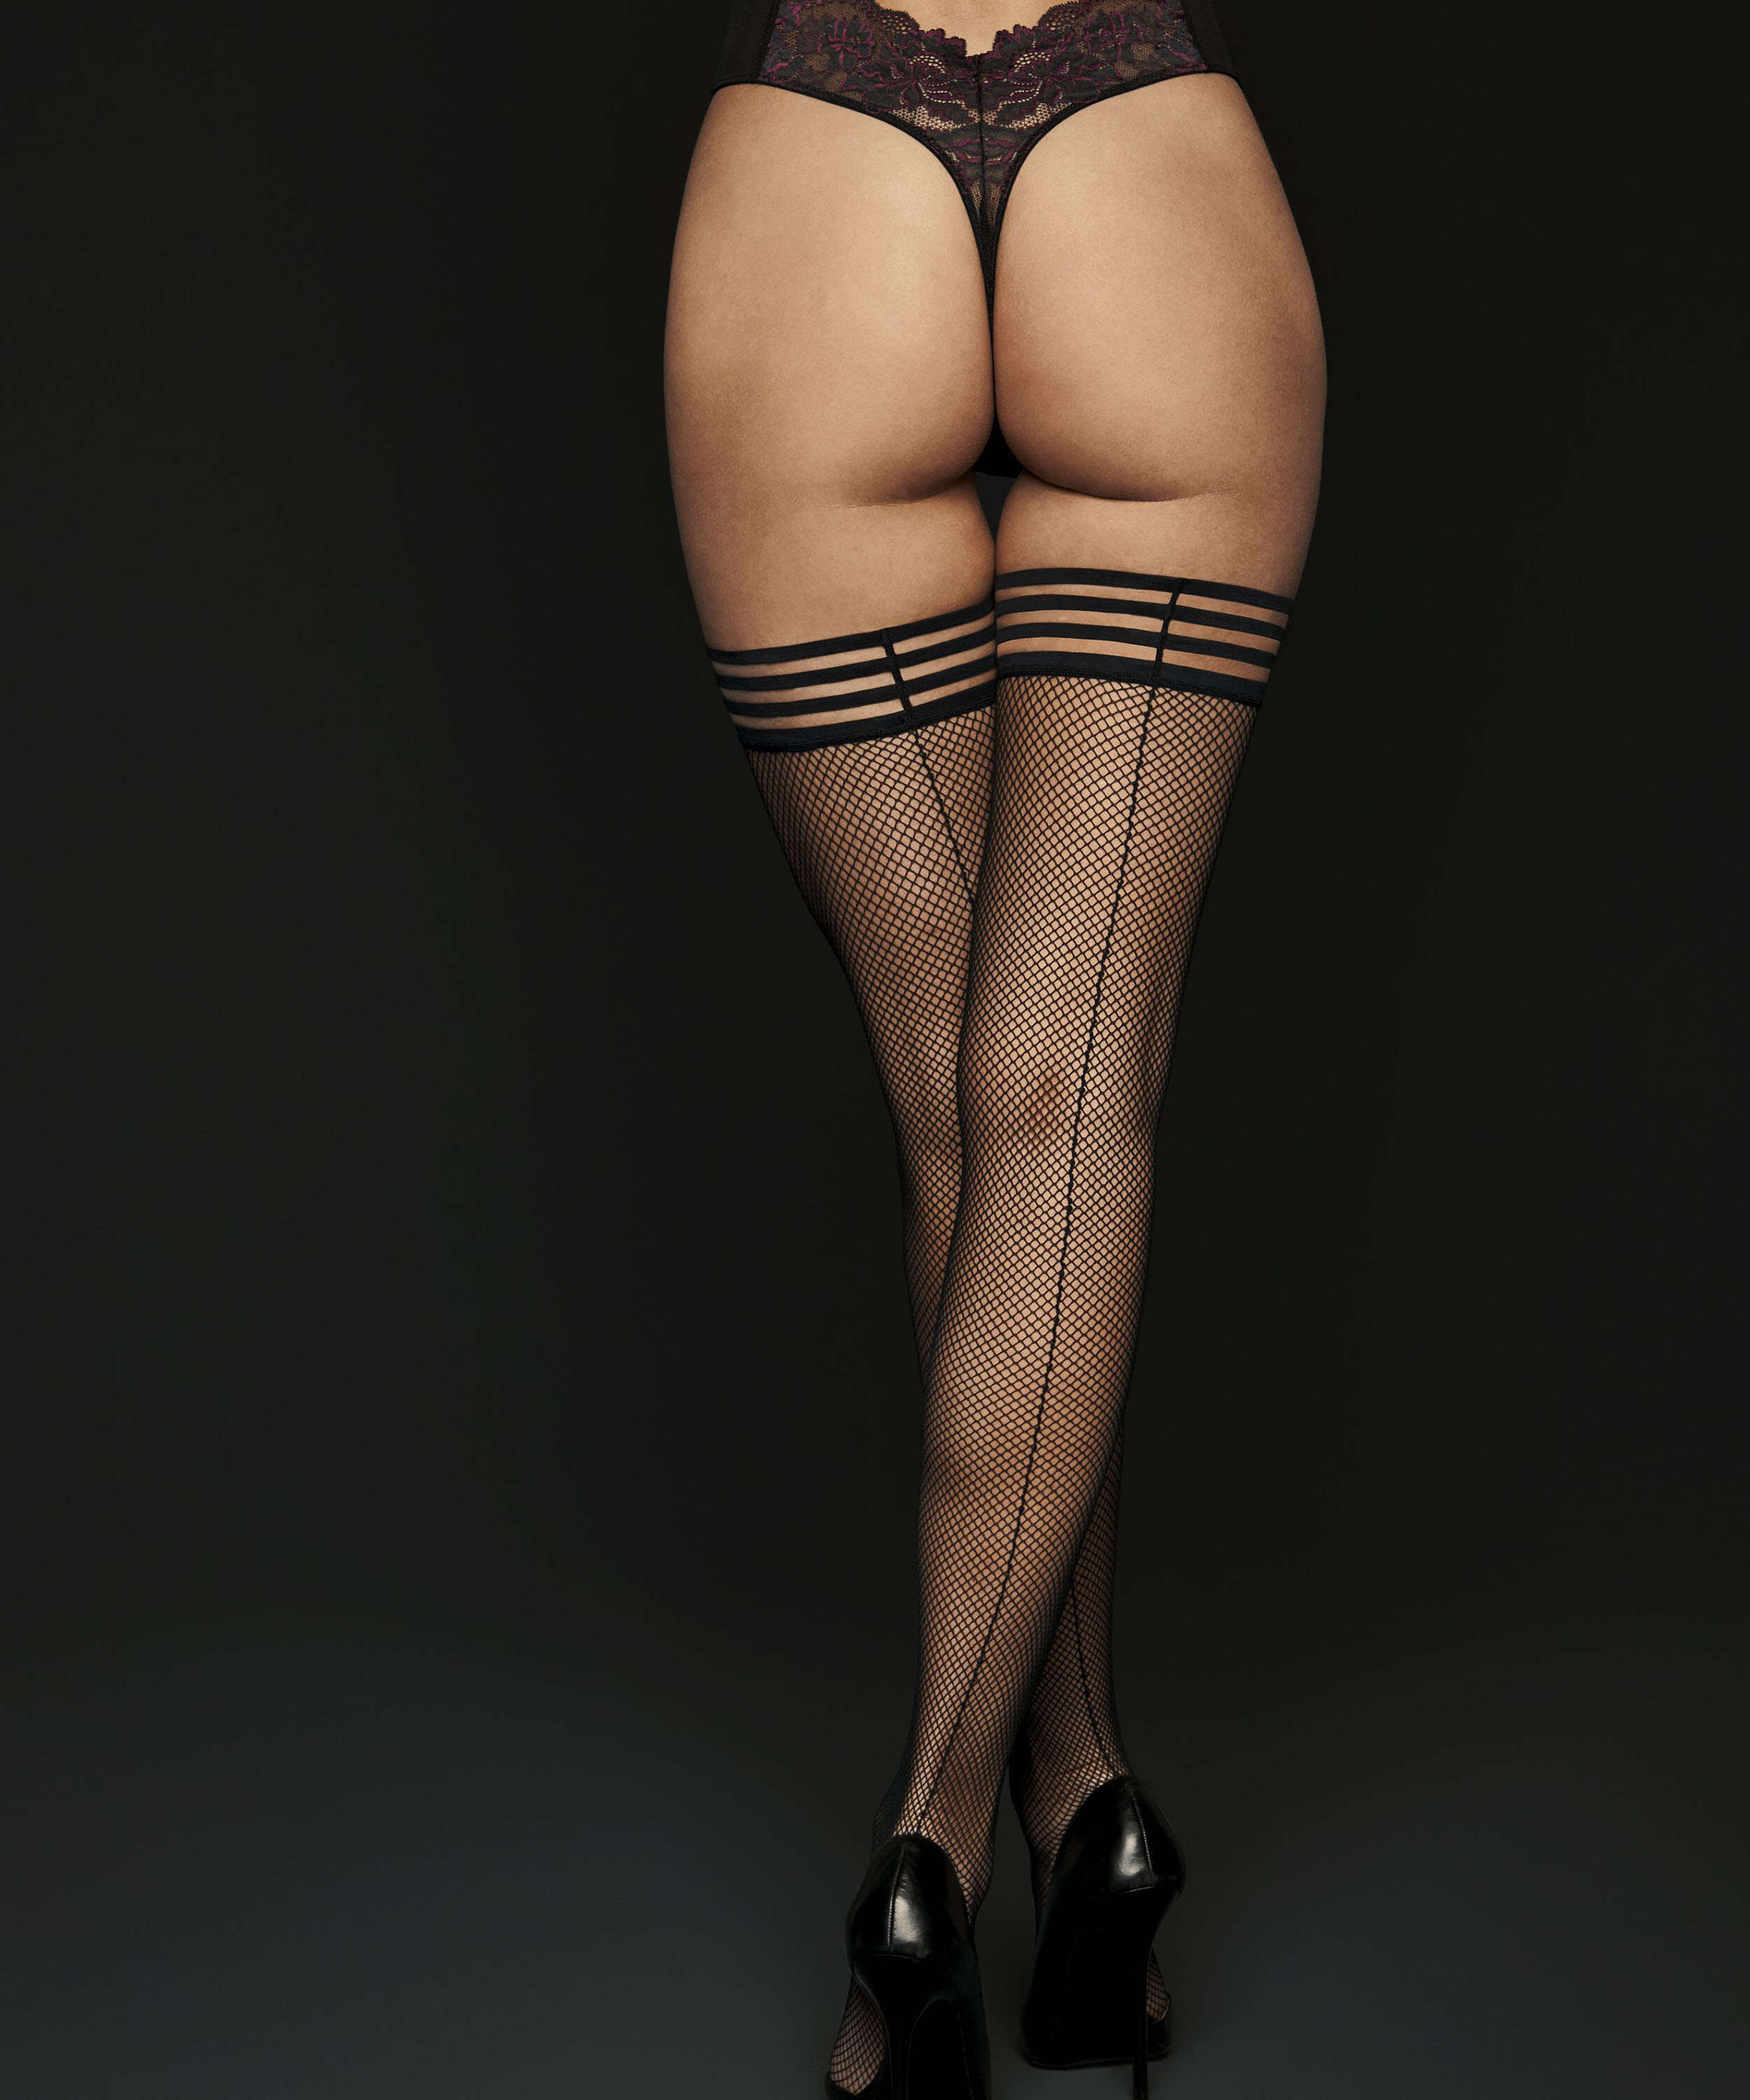 Private Striped Top Fishnet Hold-Ups, Black, main